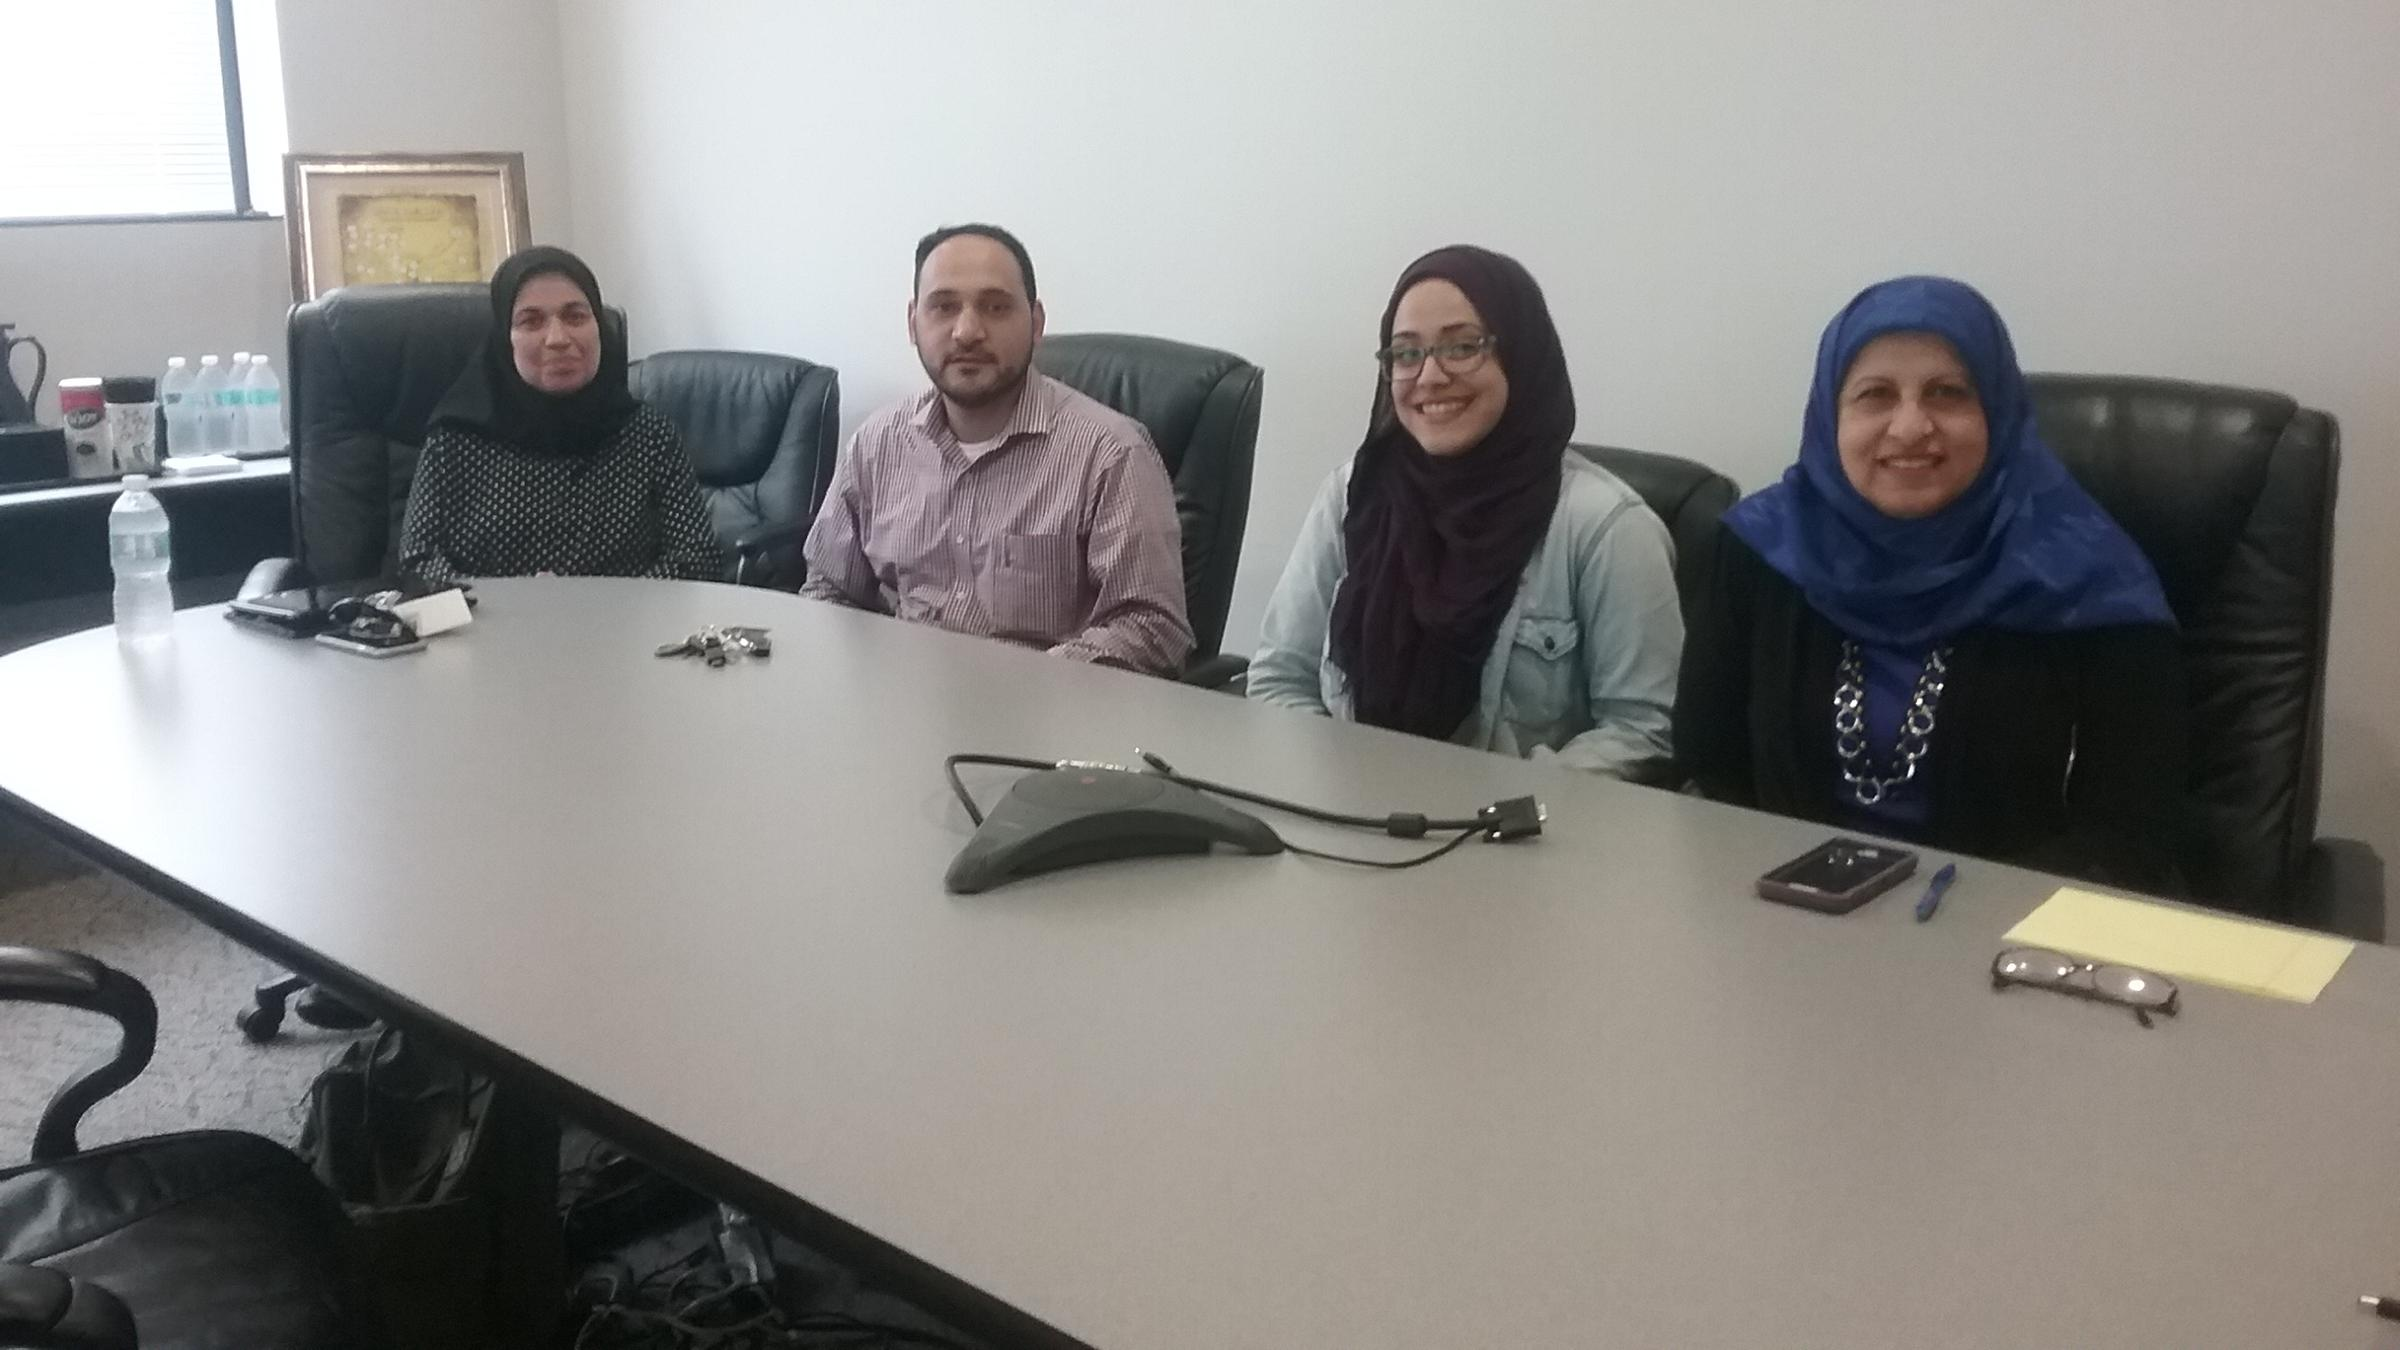 engavgen muslim Ideas about how muslim individuals and communities can help curb youth extremism.